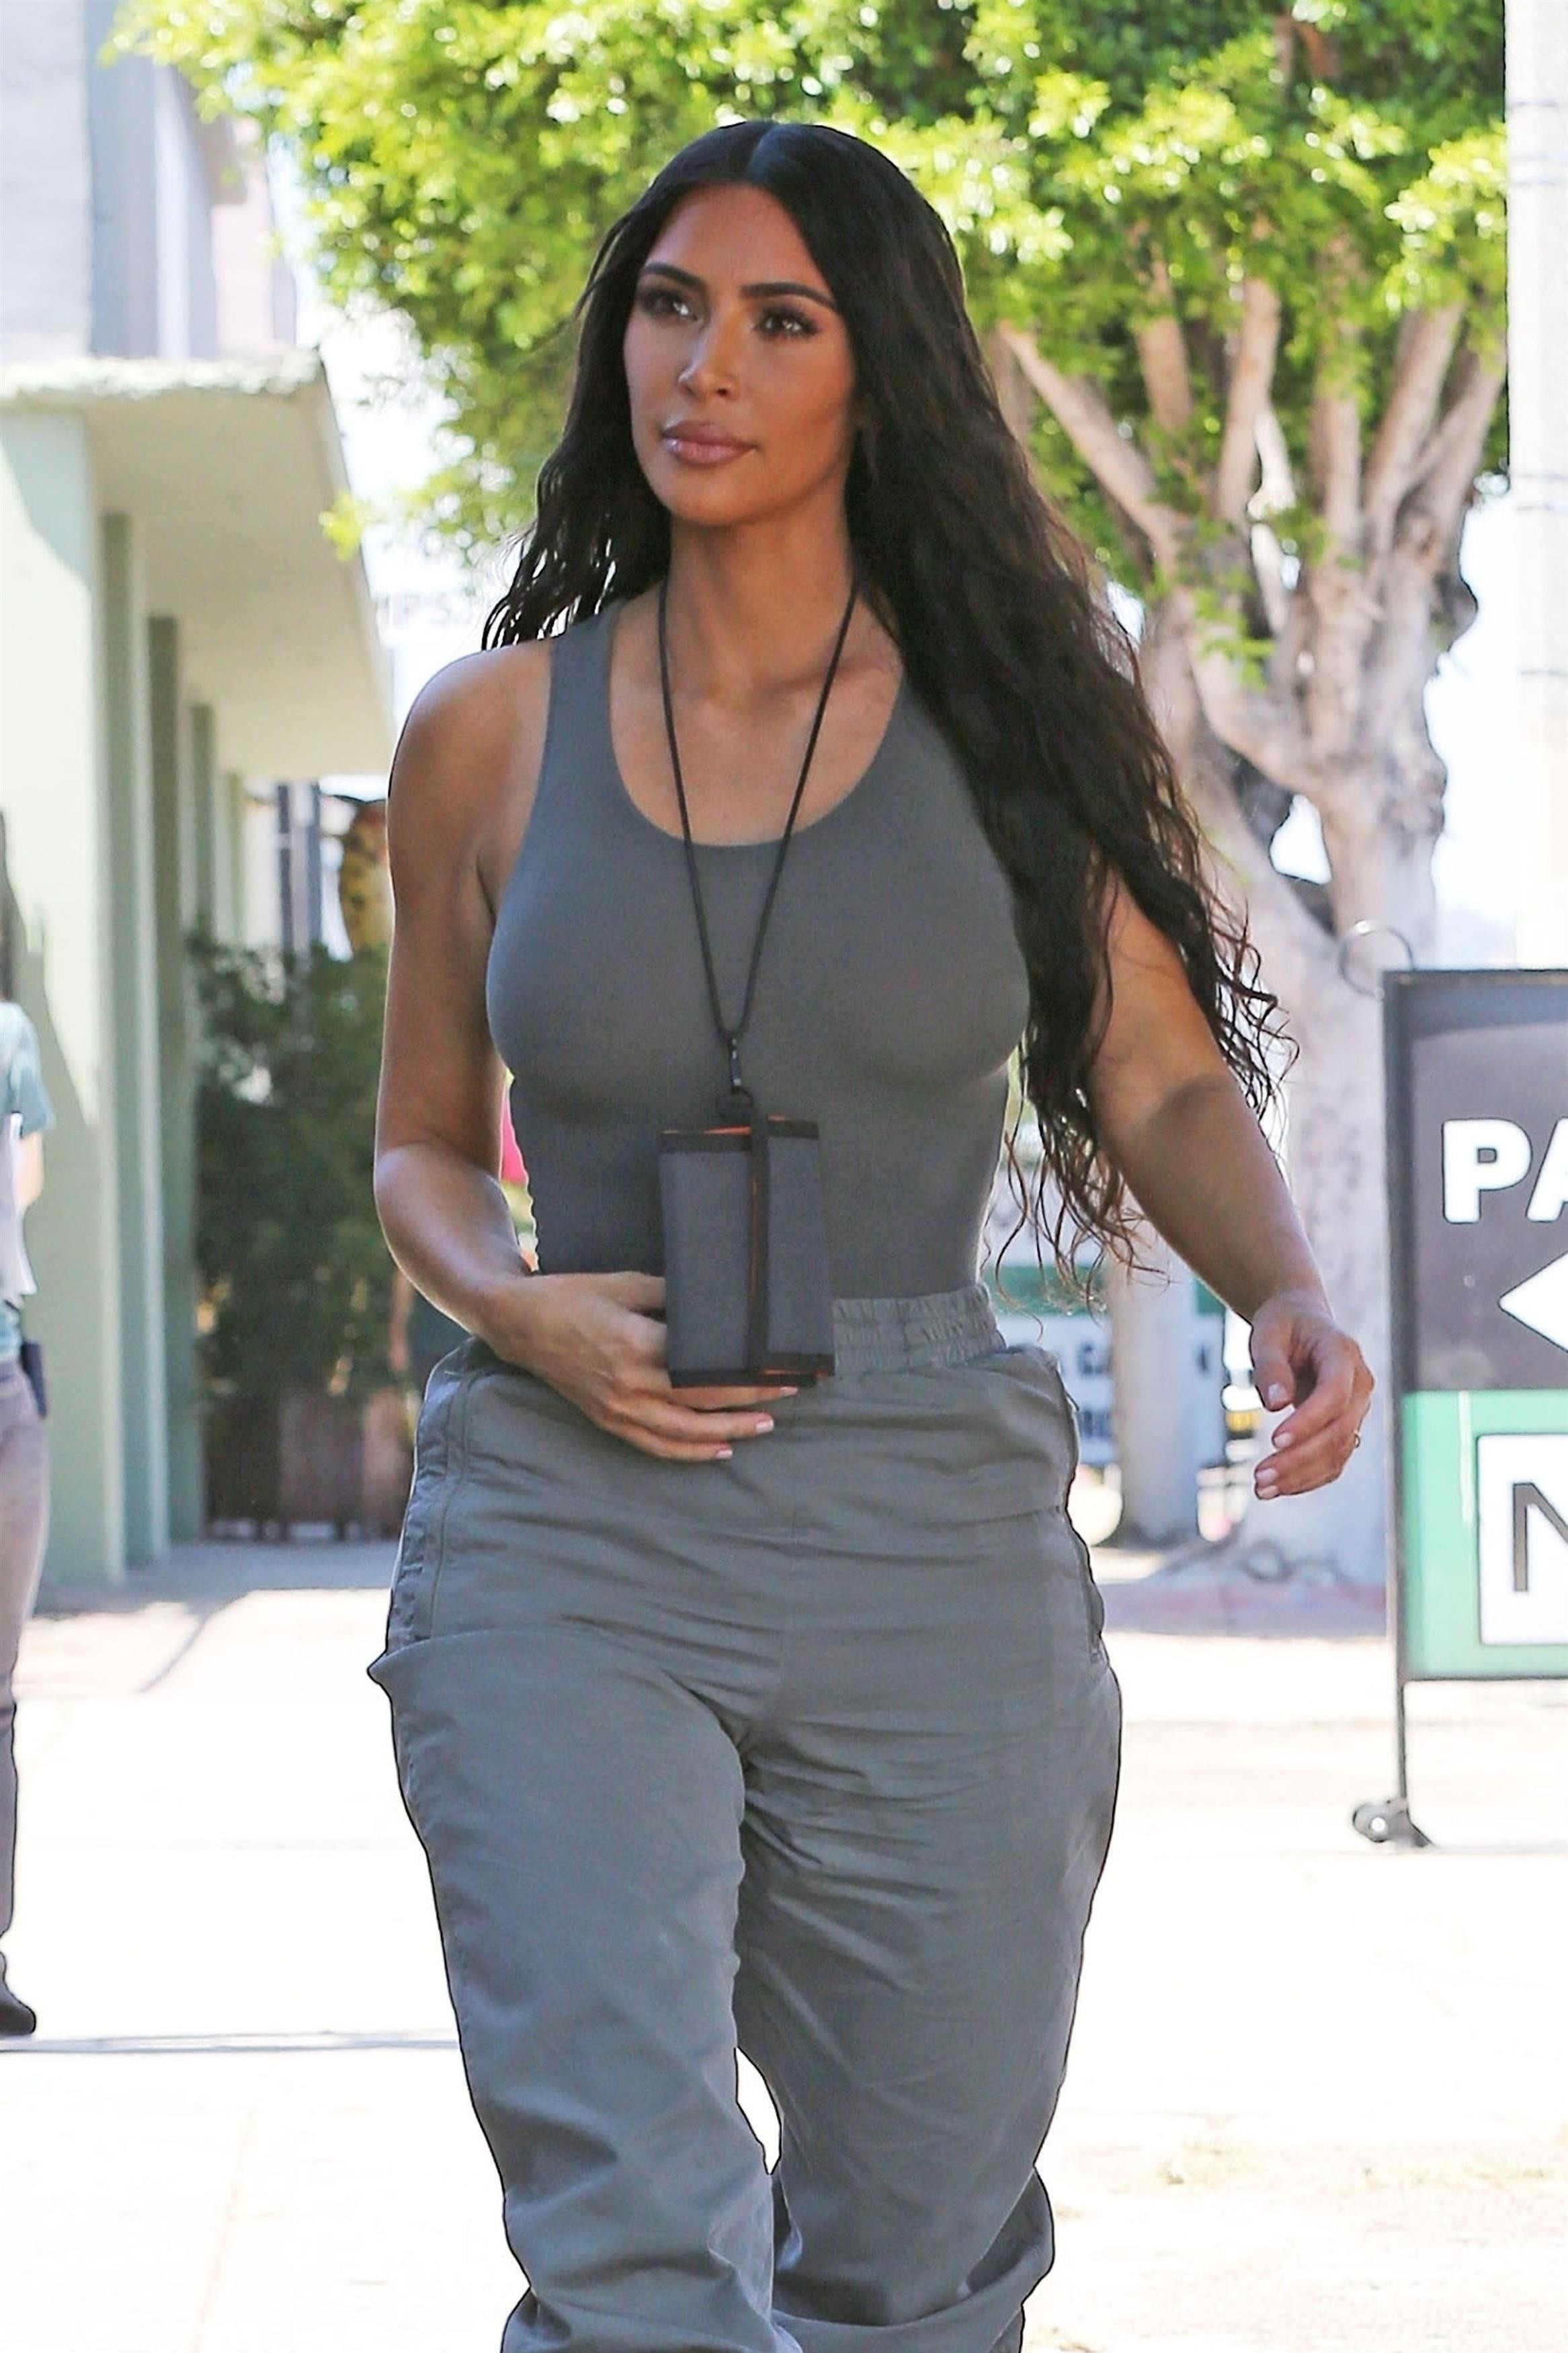 Latest Kim Kardashian Candid Pictures - Sexy Actress Pictures | Hot Actress Pictures - ActressSnaps.com